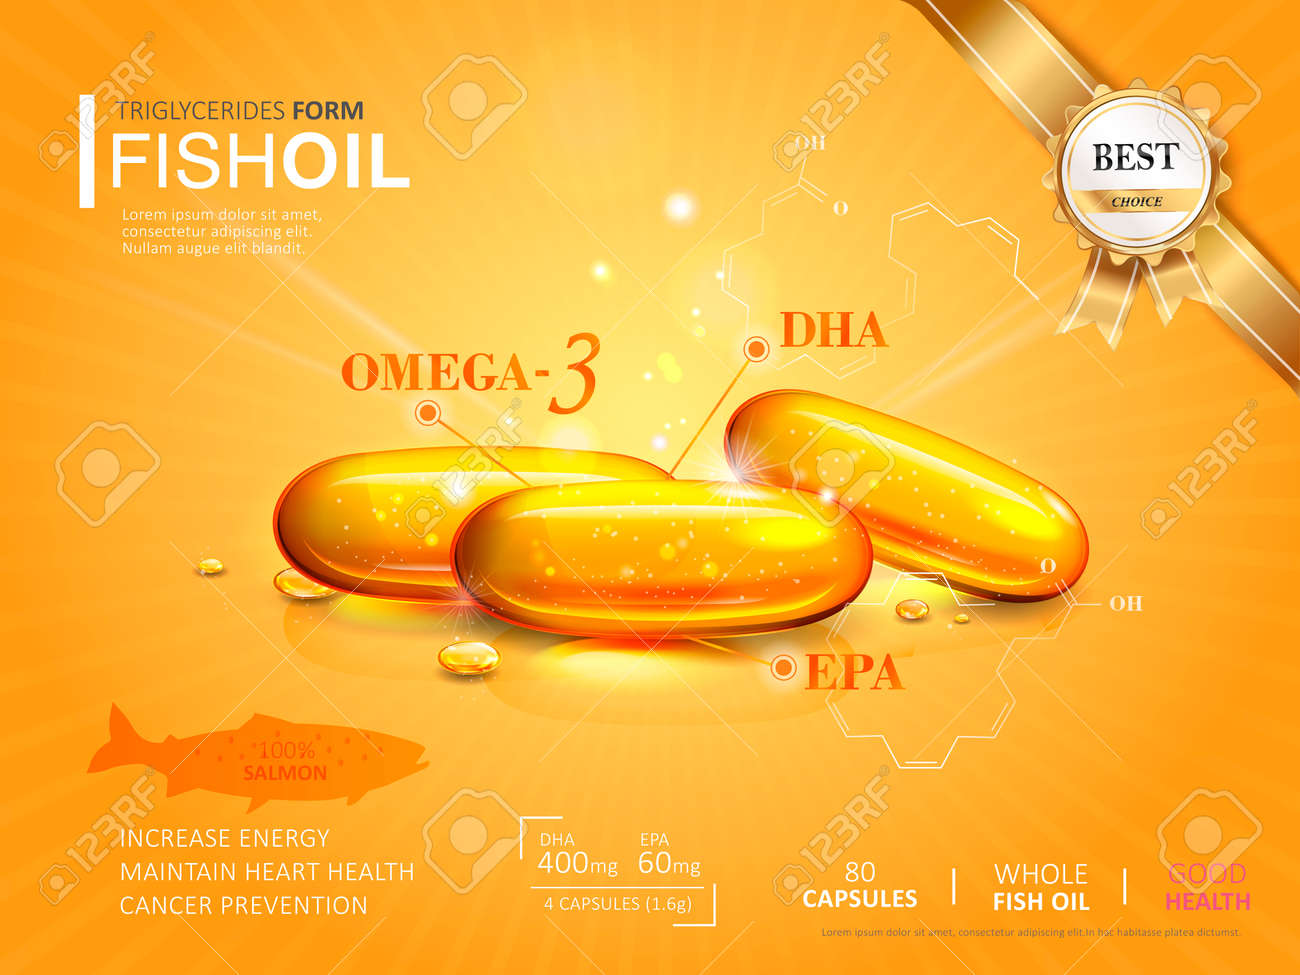 Fish Oil Ads Template, Omega-3 Softgel Isolated On Chrome Yellow ...